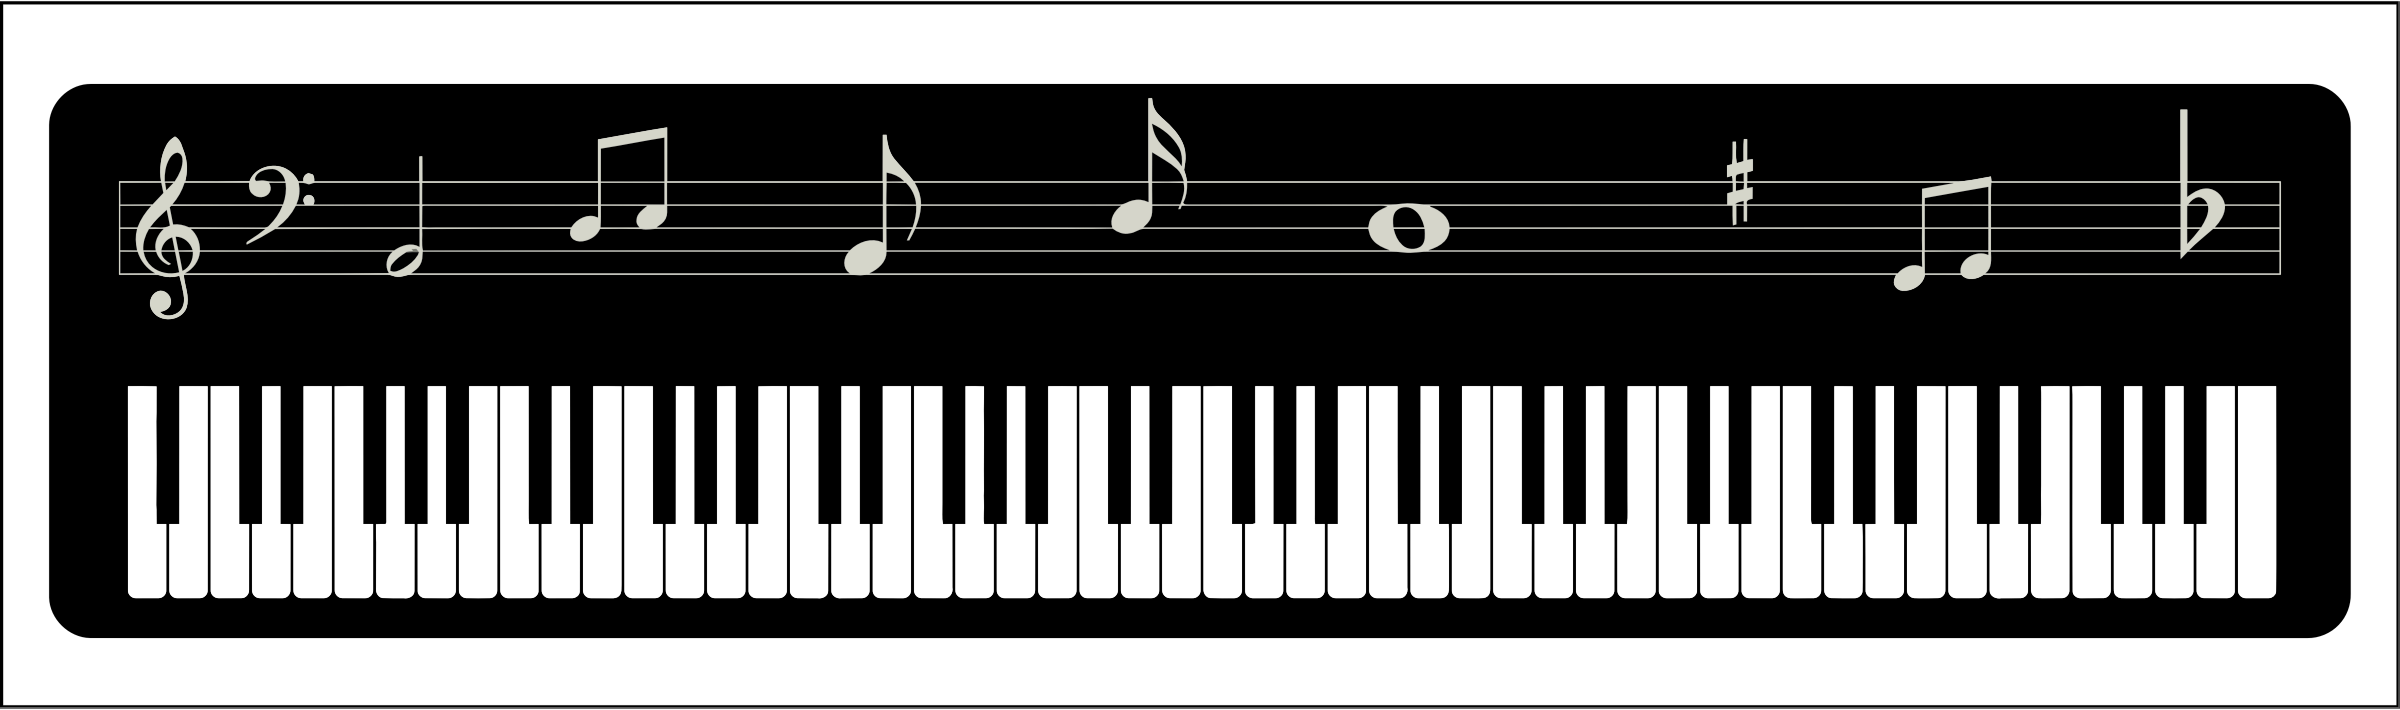 Piano keyboard png. Icons free and downloads